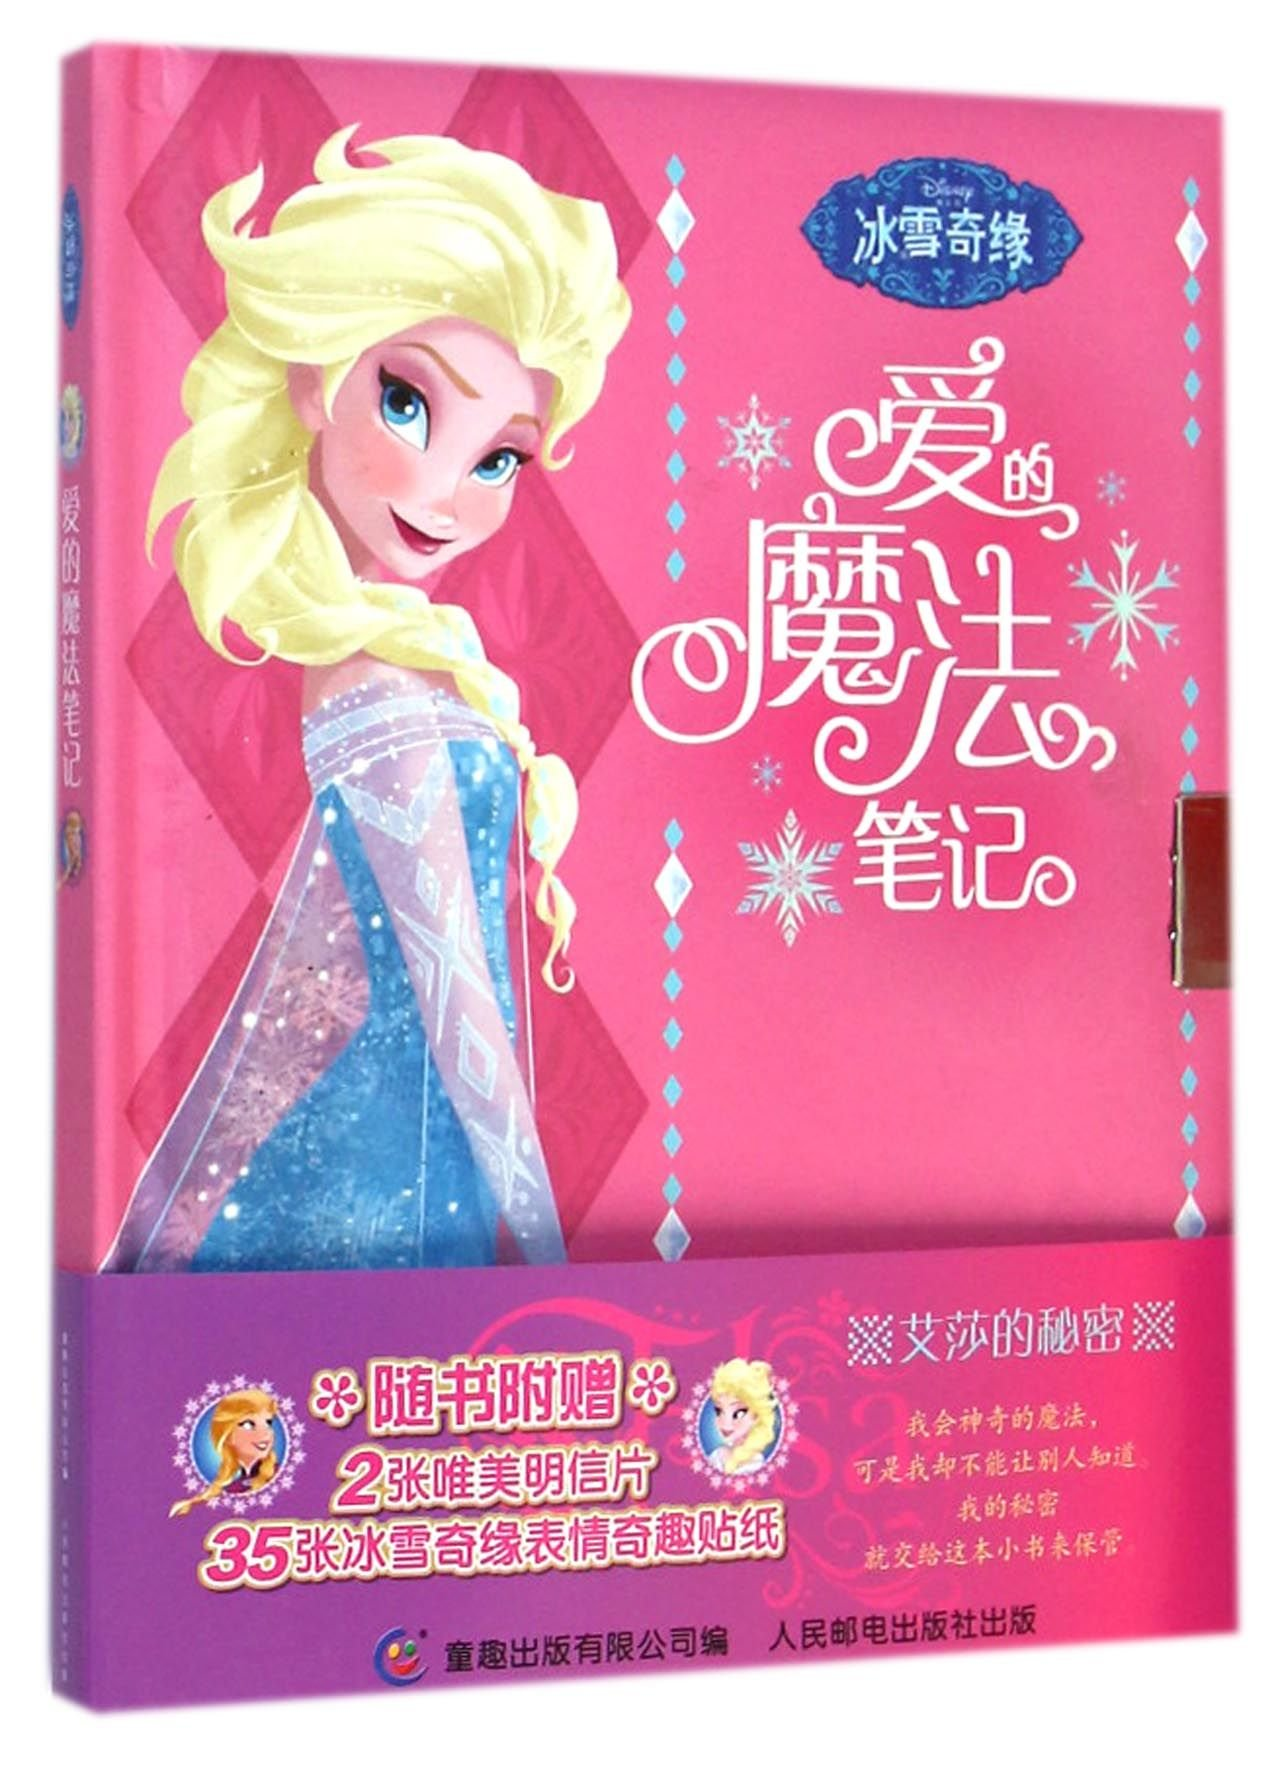 Download The Snow Queen- Magic Note about Love (Hardcover) (Chinese Edition) pdf